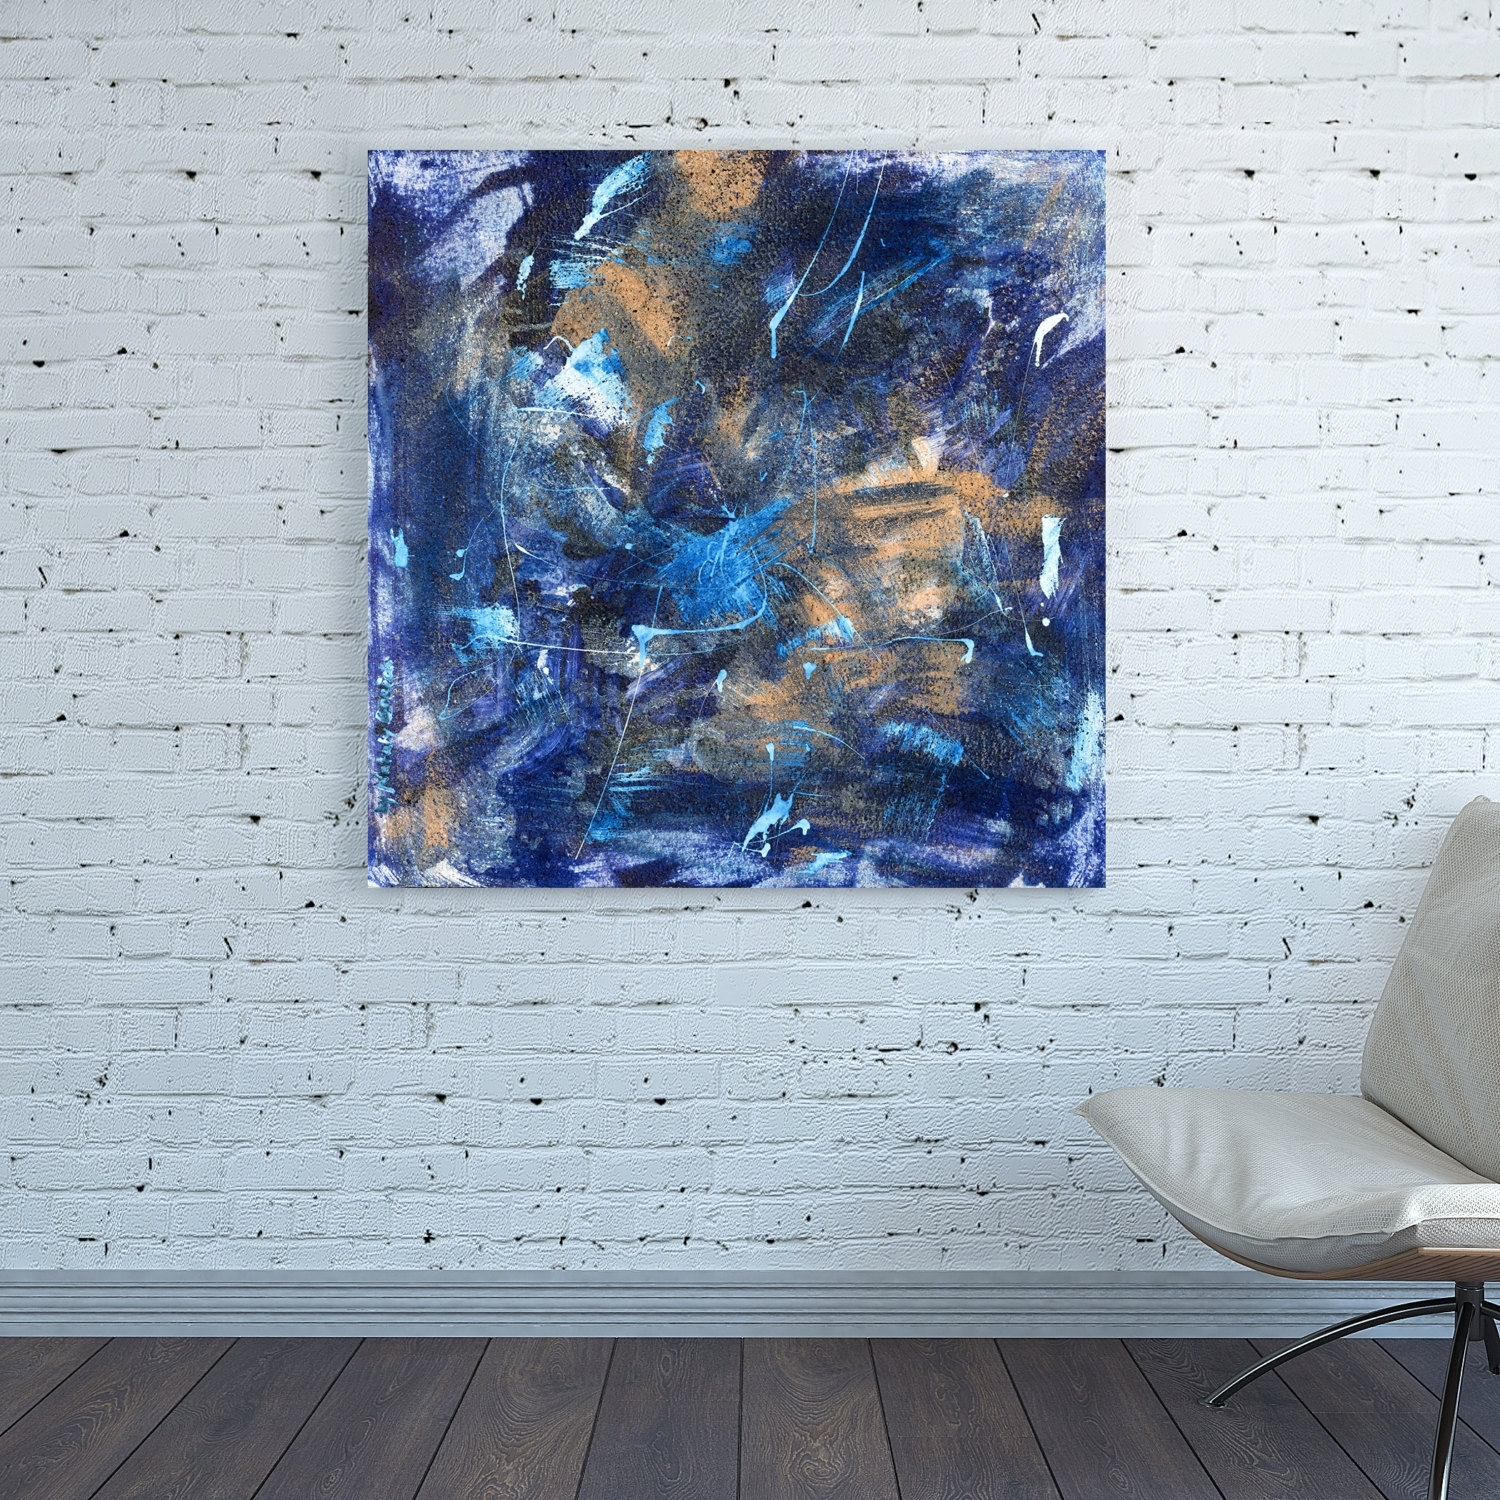 Canvas Print Dark Blue Abstract Wall Art Square Blue Colorful Regarding Most Current Dark Blue Abstract Wall Art (View 15 of 20)